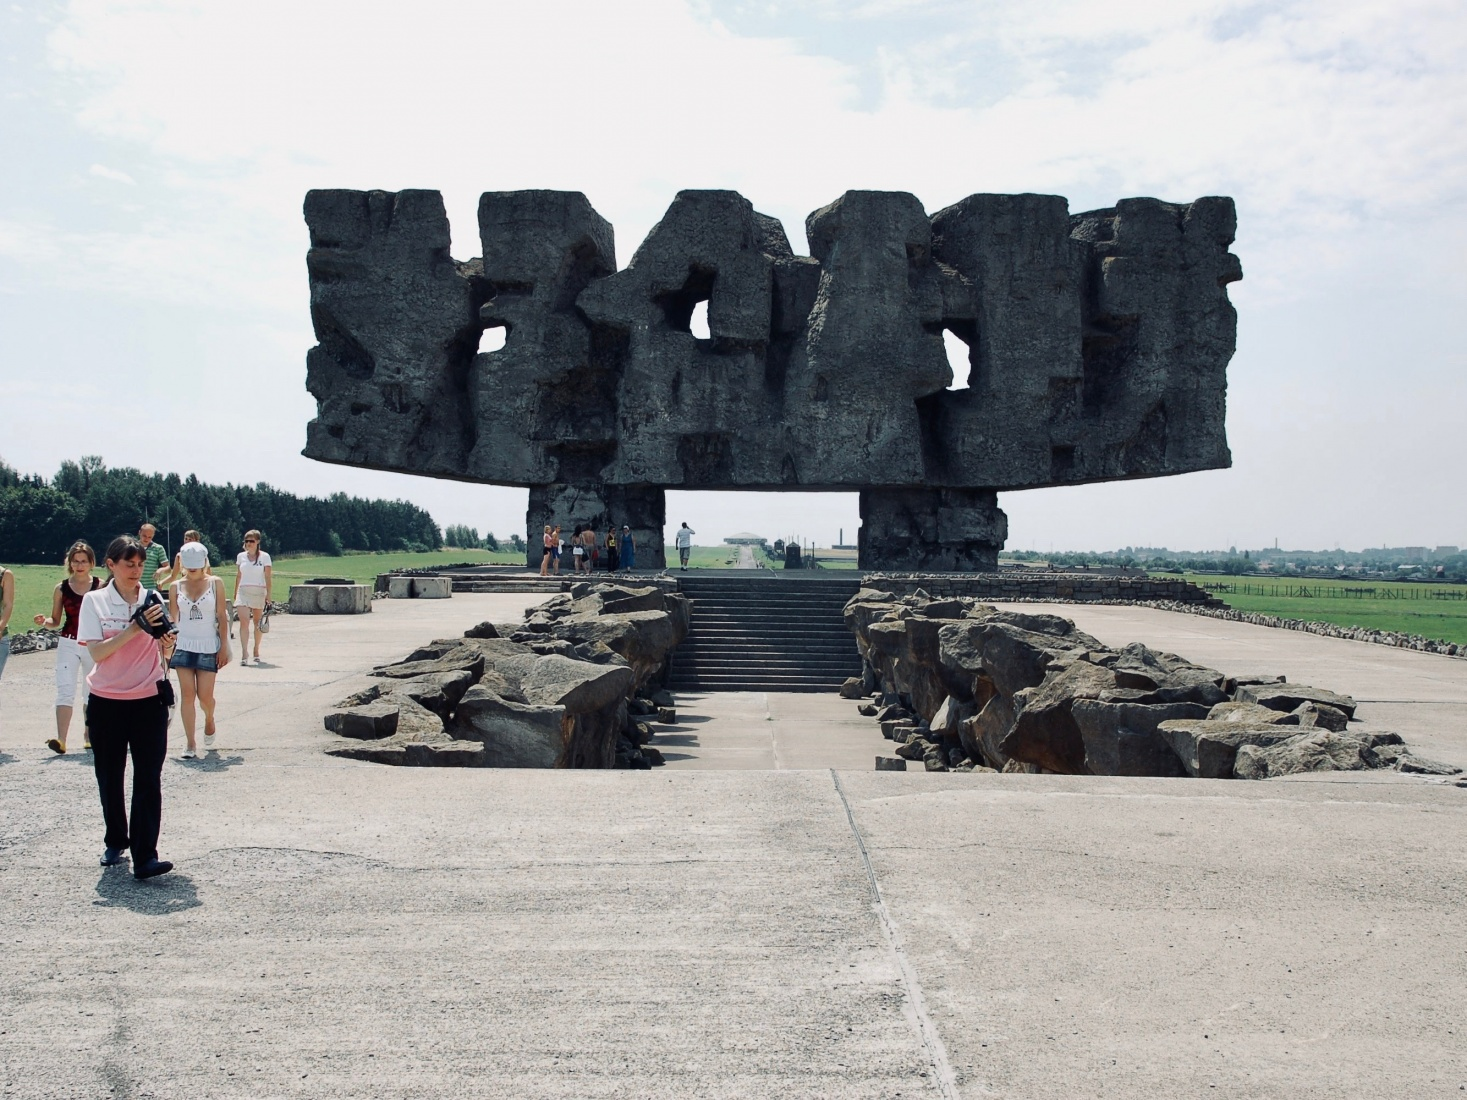 A front-view of the memorial sculpture by Victor Tolkin at the Majdanek concentration camp, outside Lublin, Poland.